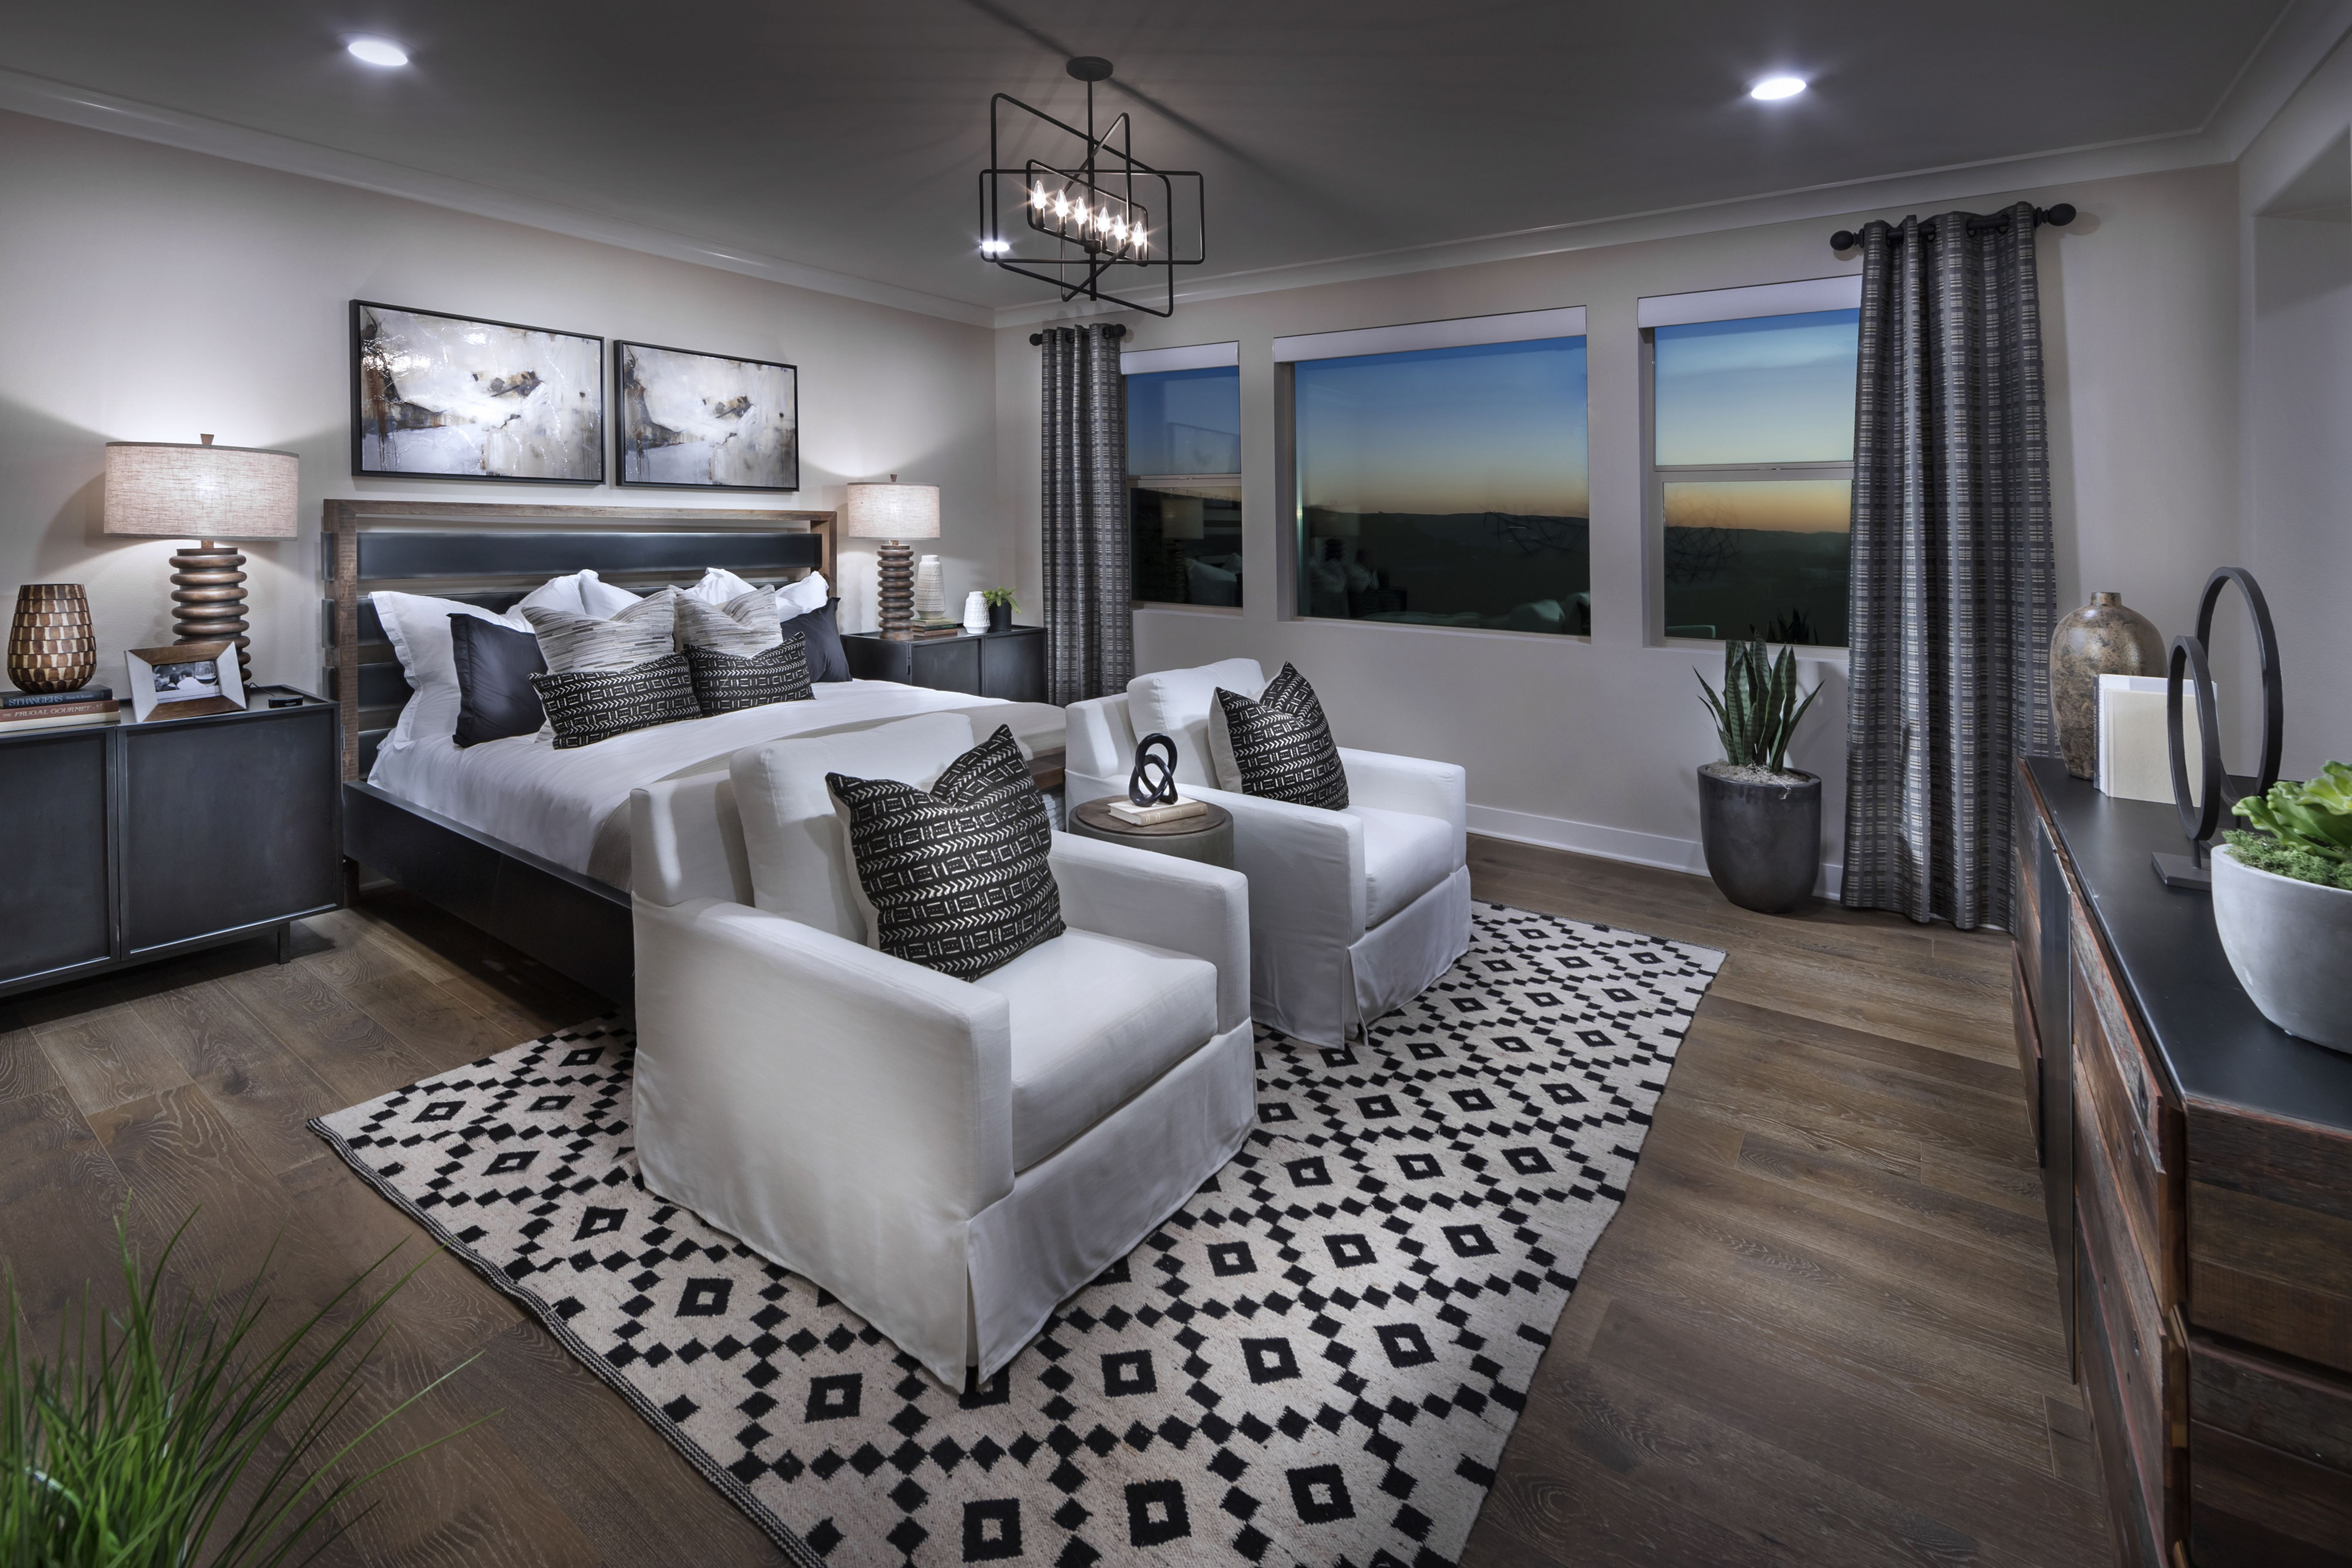 Homes with 2 master bedrooms  Residence  master bedroom  Eclipse at Altair Irvine  Pinterest